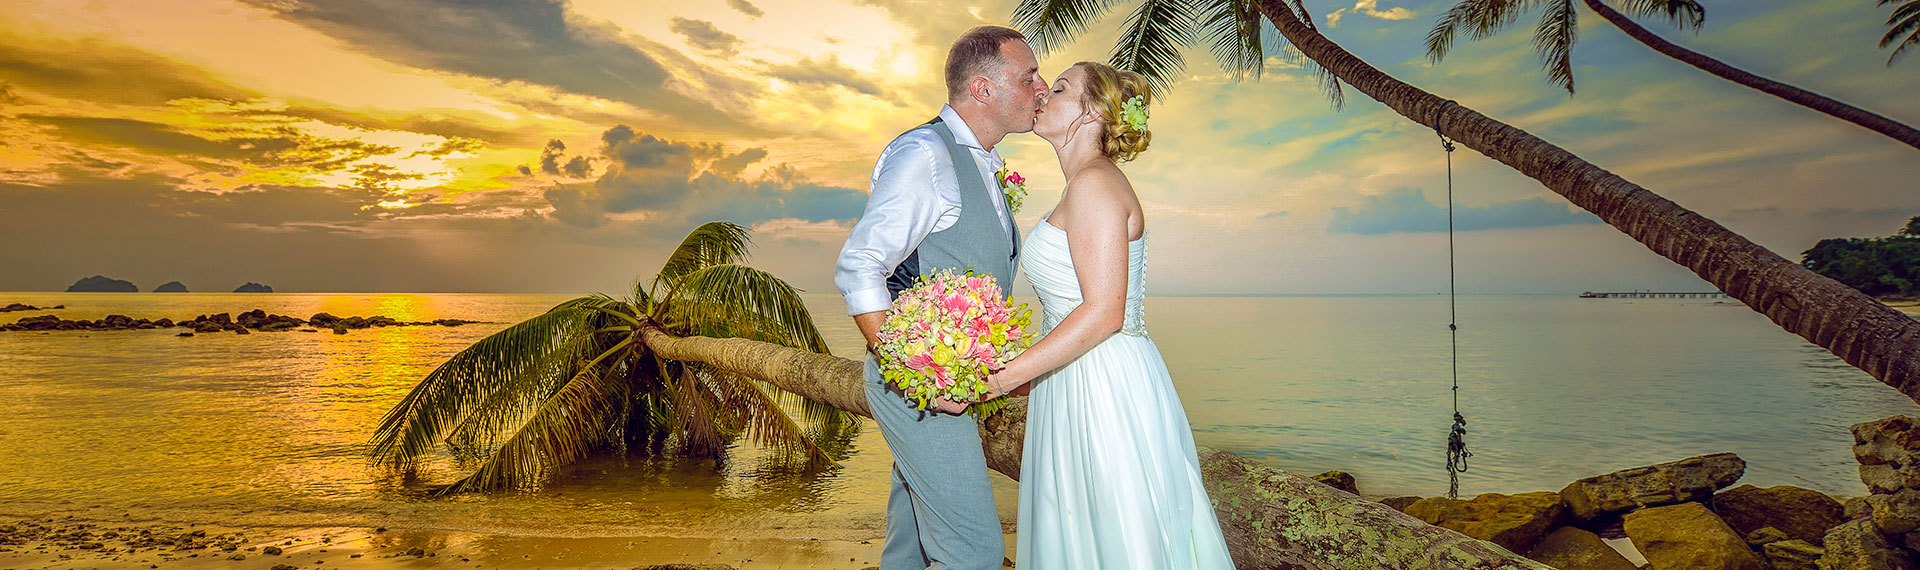 Thailand Destination Wedding